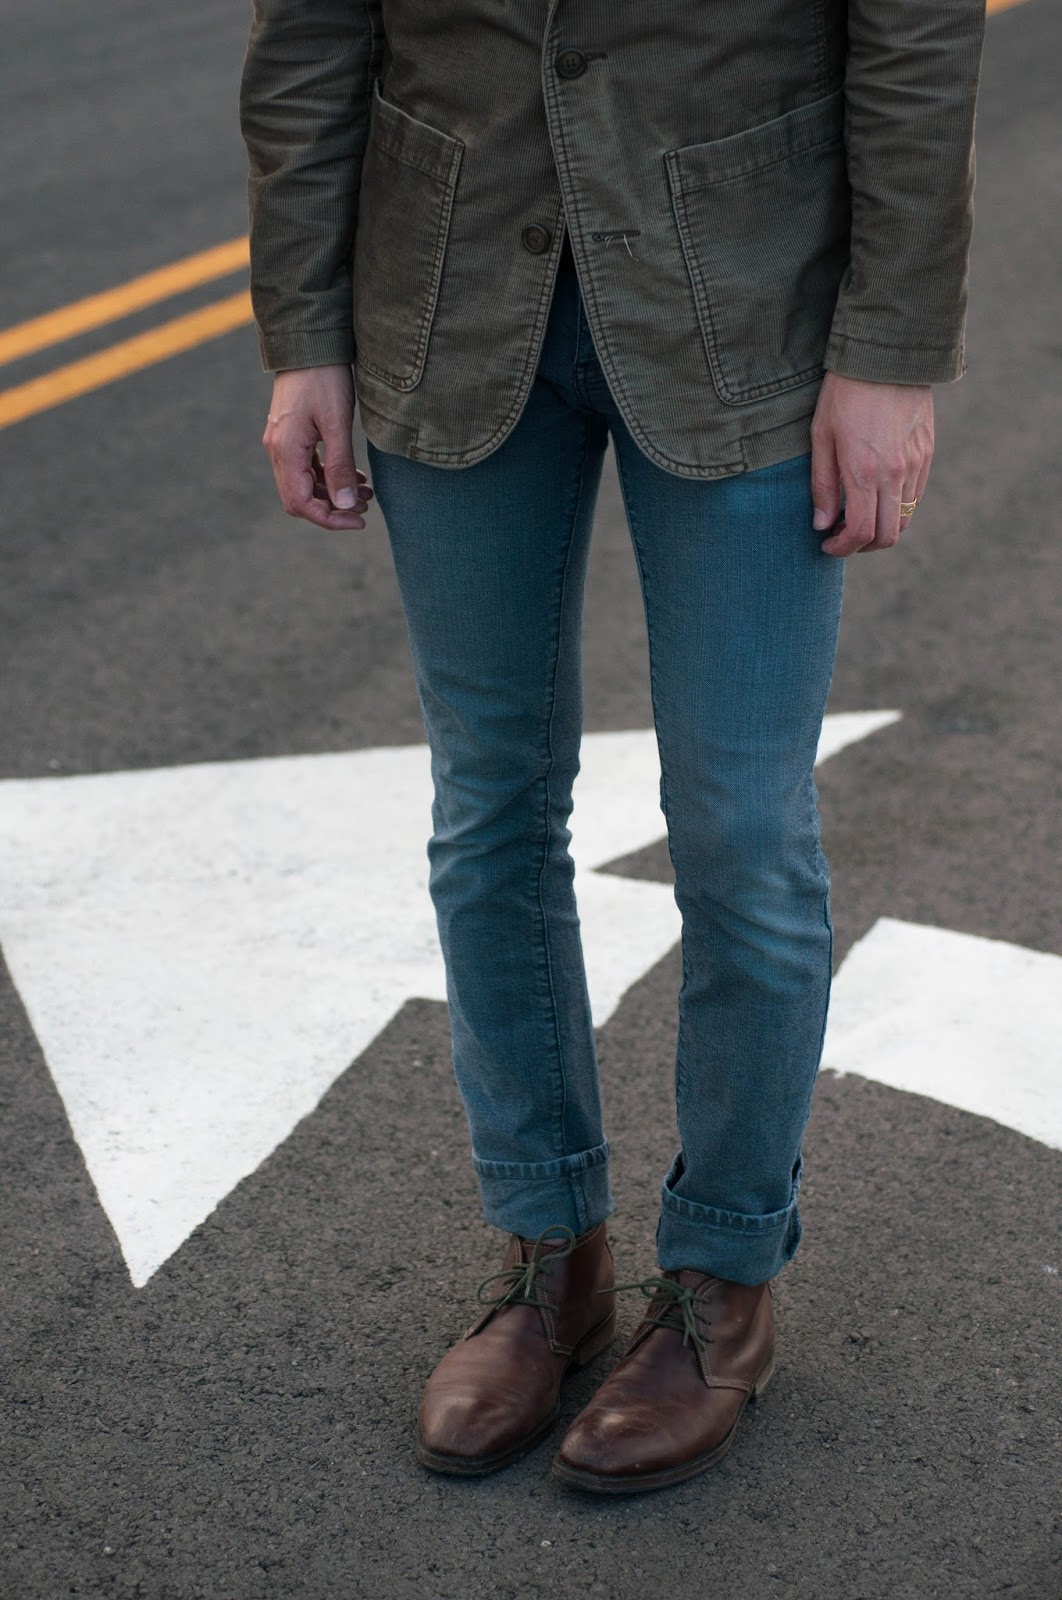 ootd, mens fashion, mens style, street arrow, css jeans, gordon rush, gordon rush boots